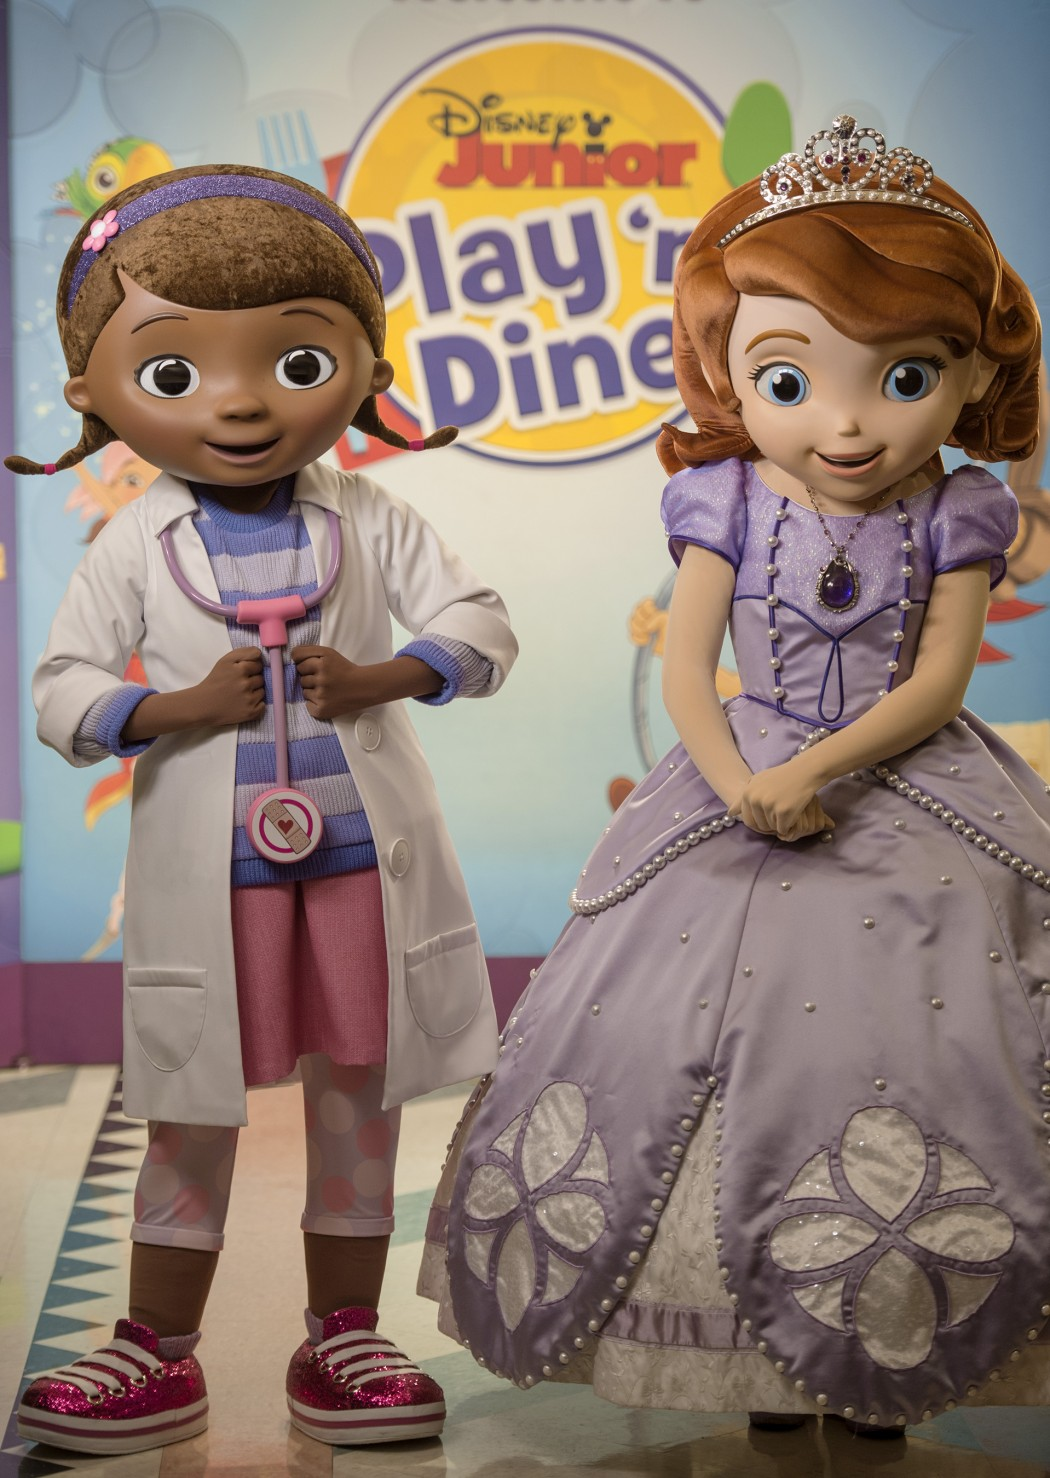 Doc McStuffins Meet and Greet Coming to Walt Disney World Theme Park